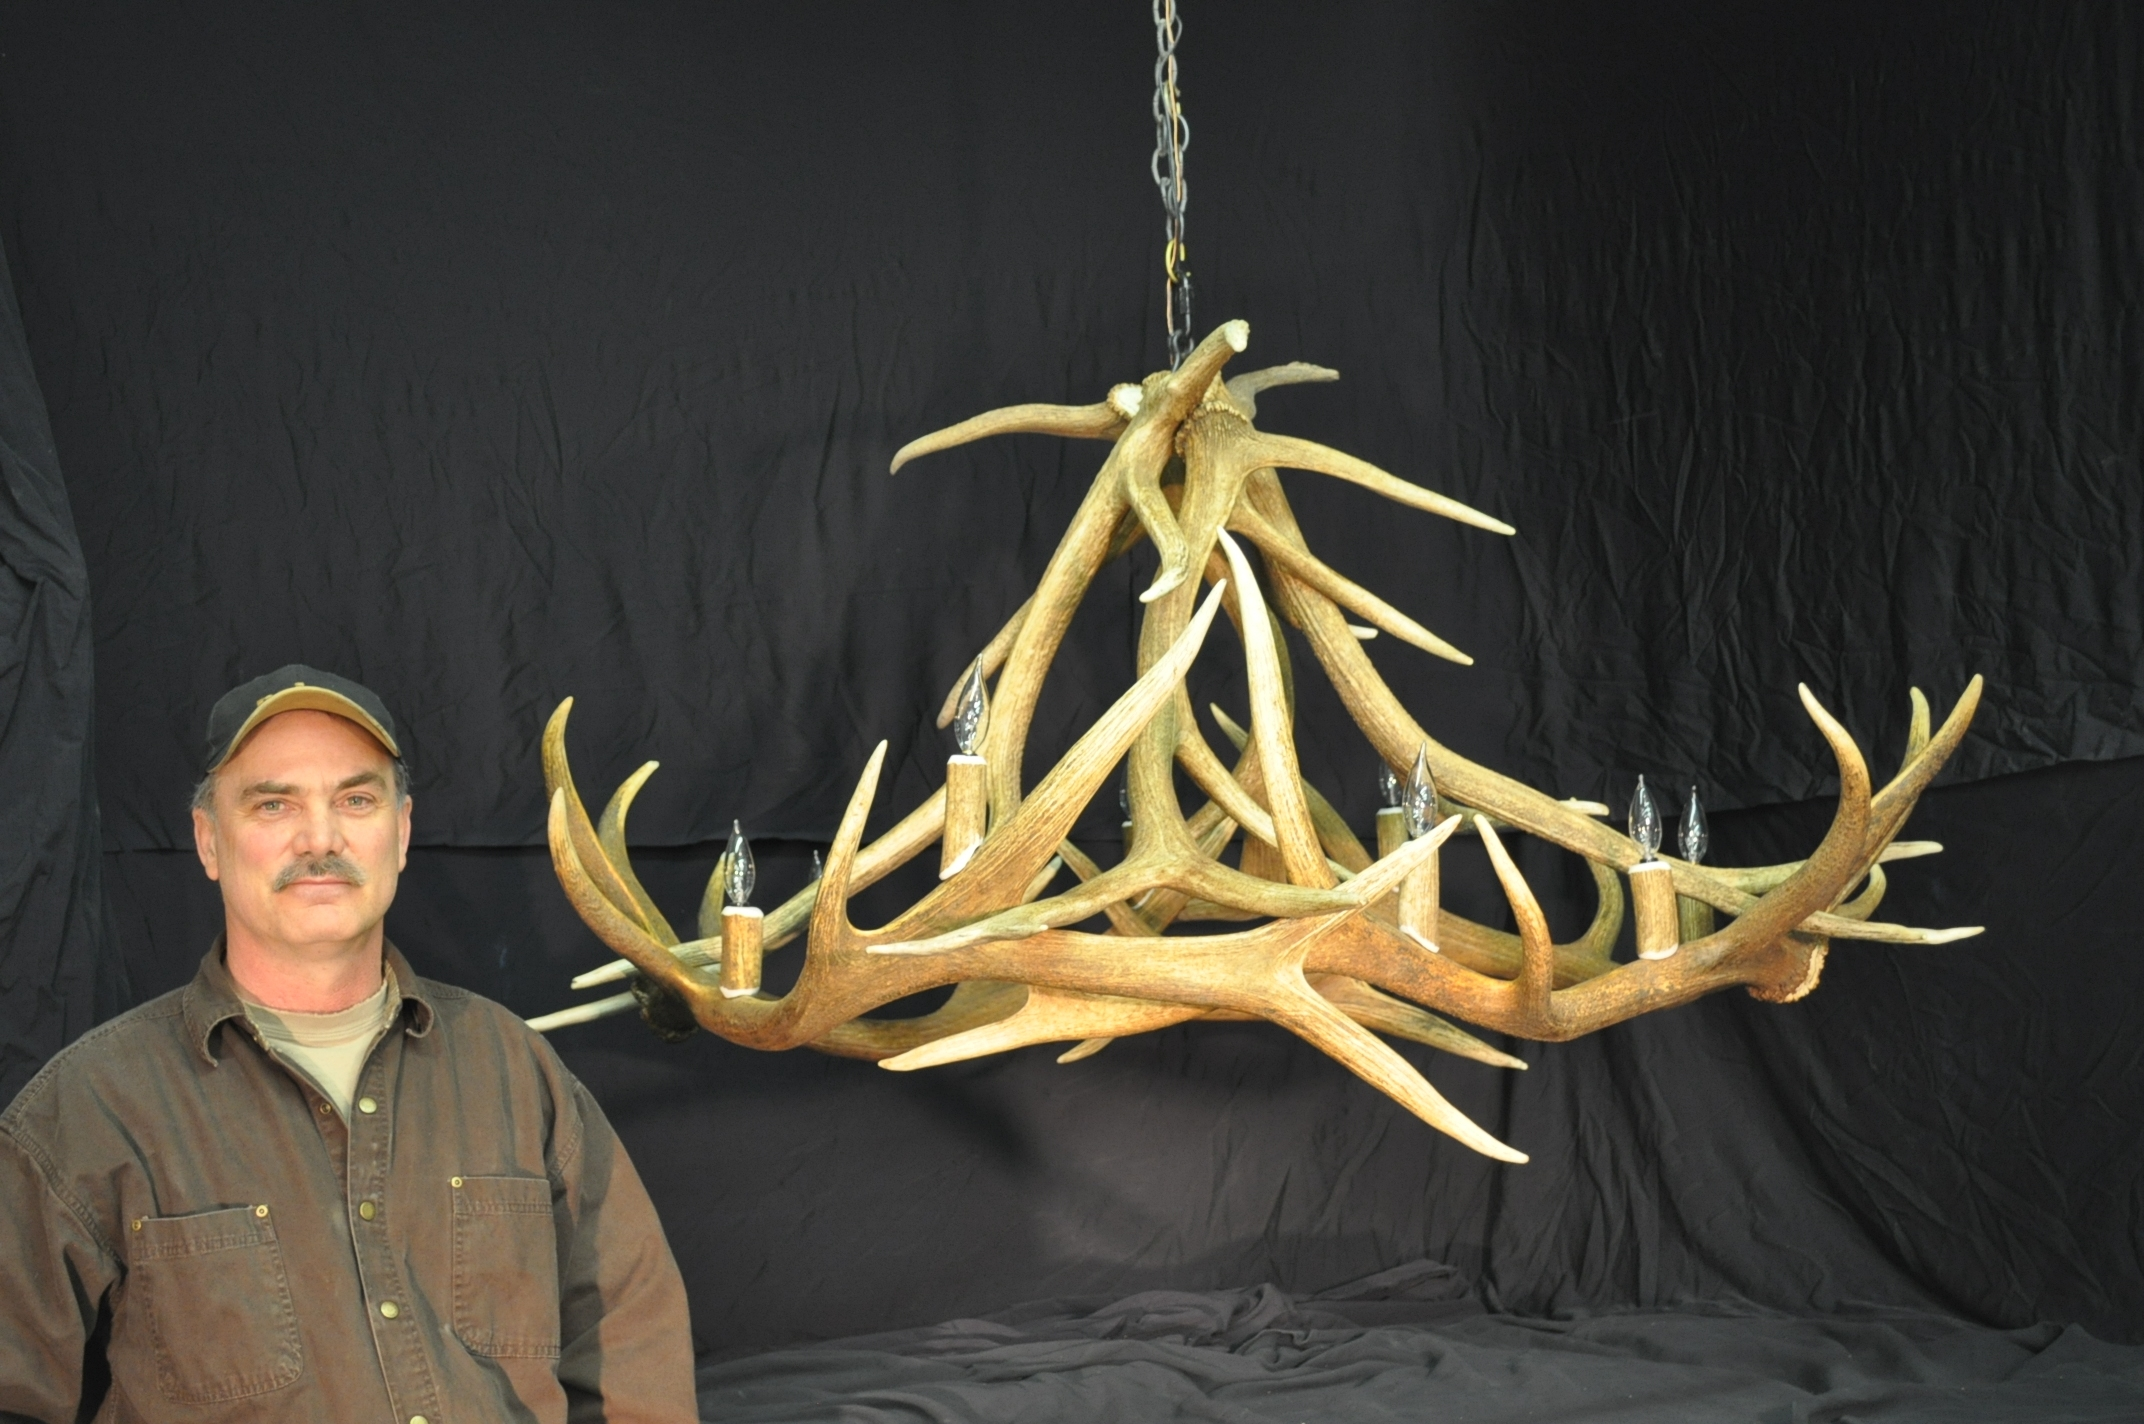 Hand Crafted Montana Antler Chandeliers With Regard To Antler Chandeliers (Image 7 of 15)